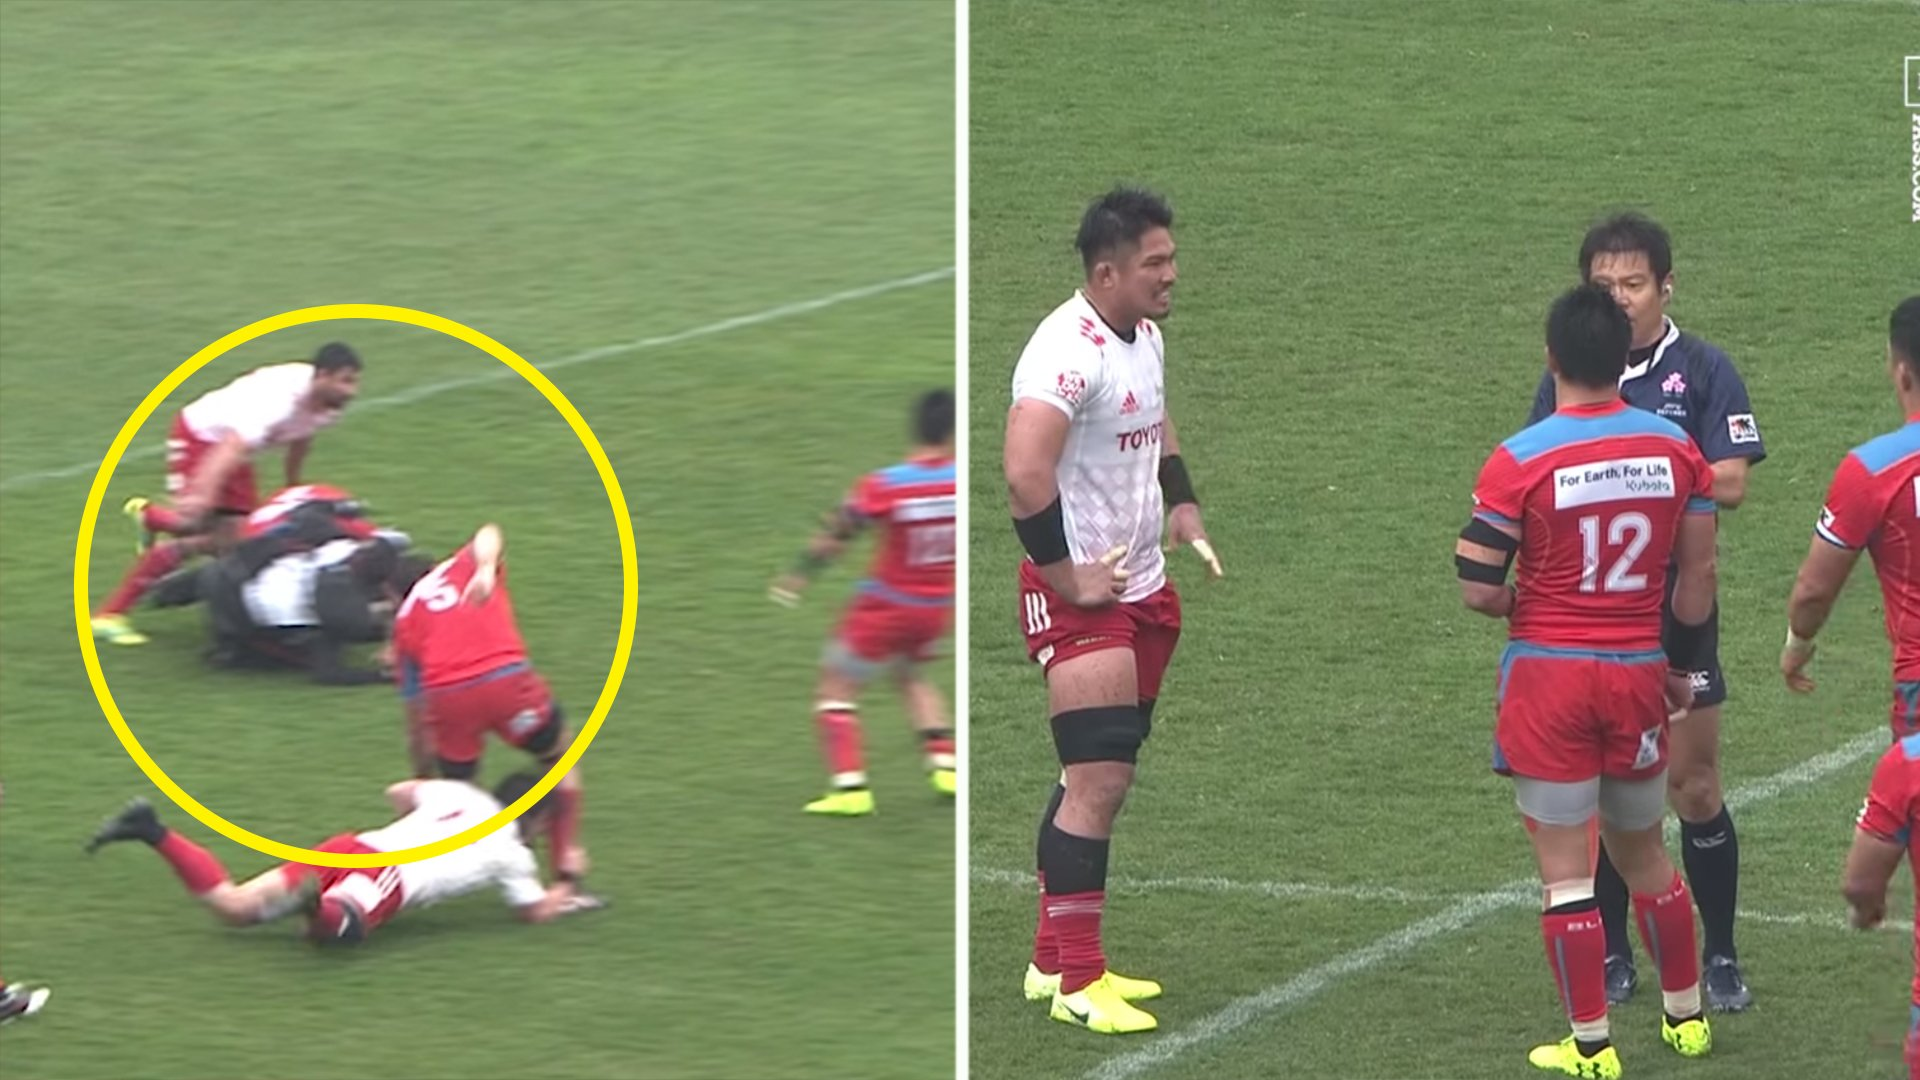 Fans aren't happy as a medic in rugby match is pushed to affect play